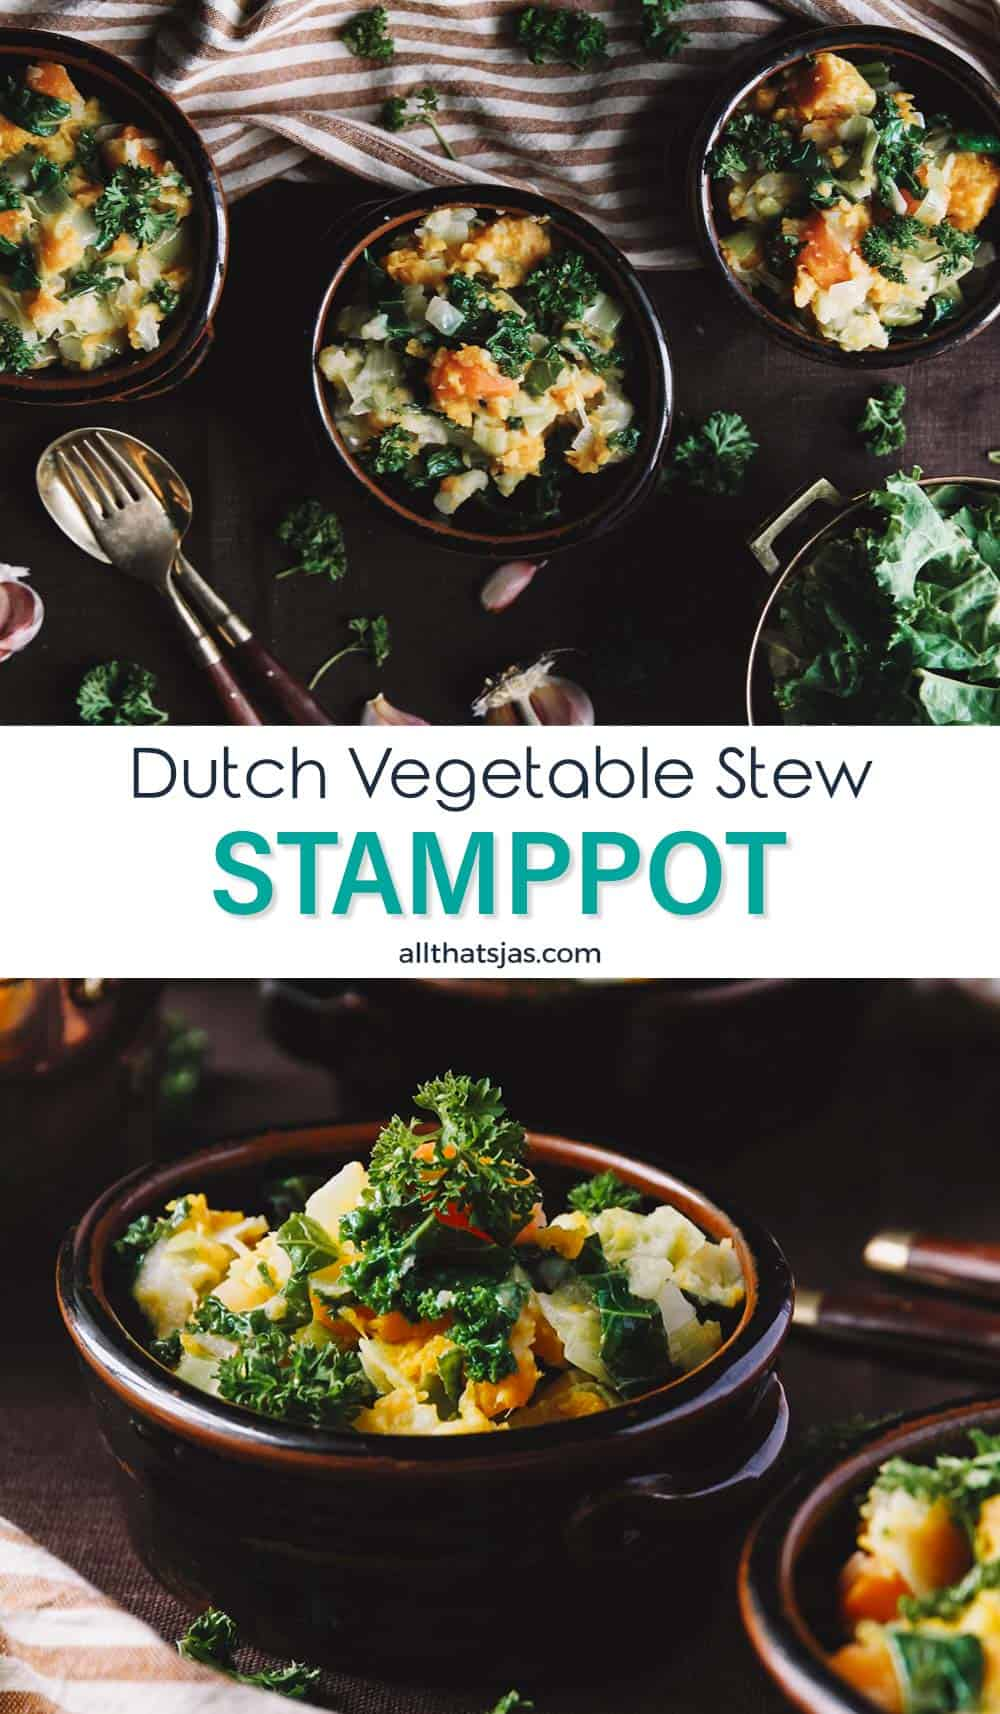 Two photo image of Dutch vegetarian stew with text overlay in the middle.